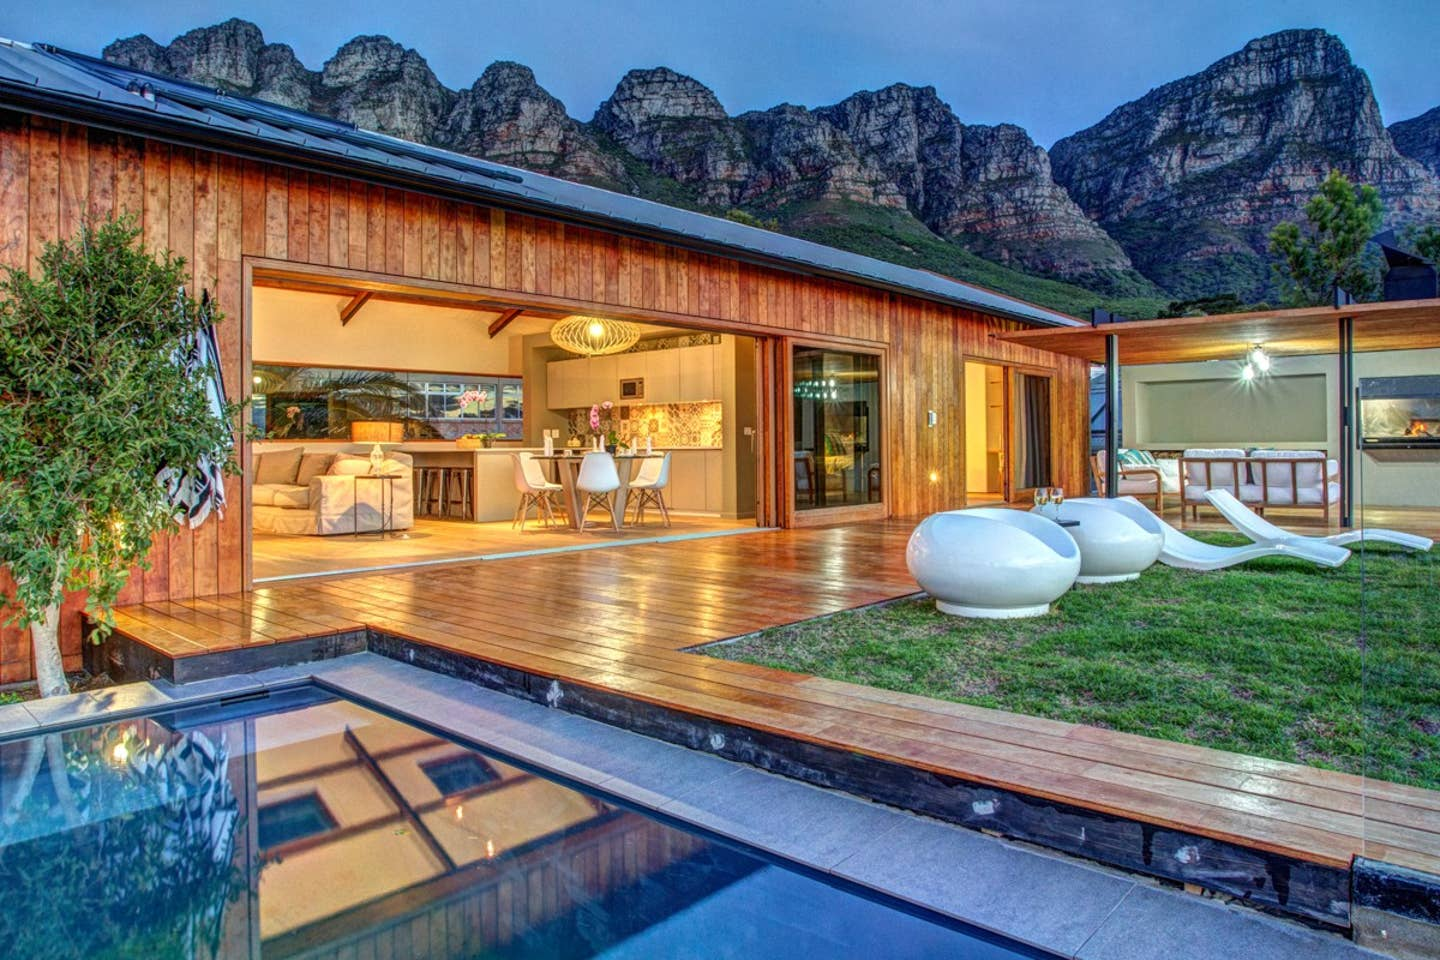 3 Bedroom Airbnbs in Cape Town